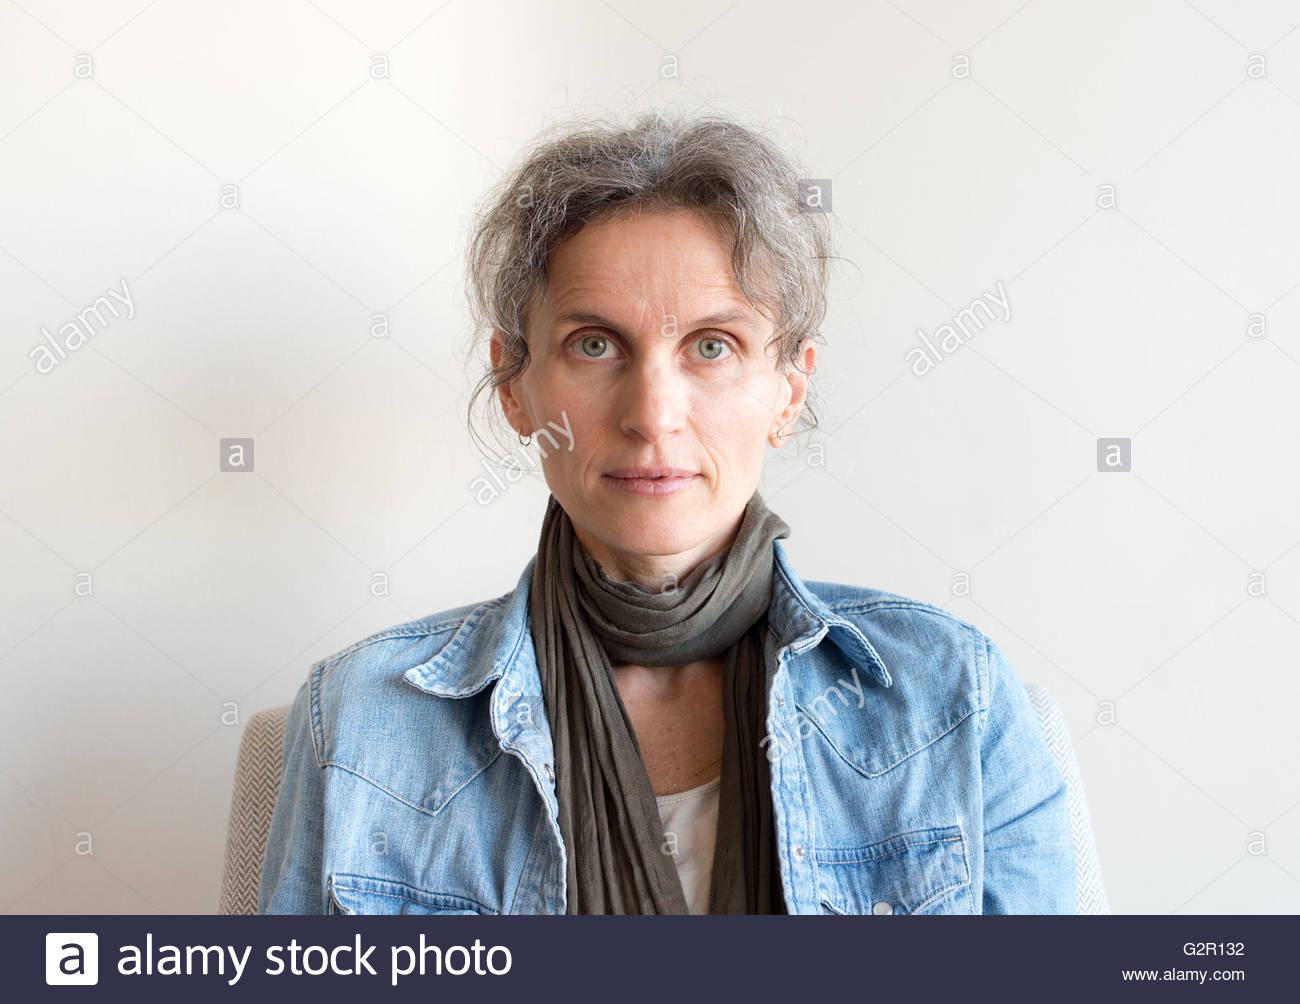 Portrait of middle aged woman with grey hair, denim shirt and scarf - Stock Image